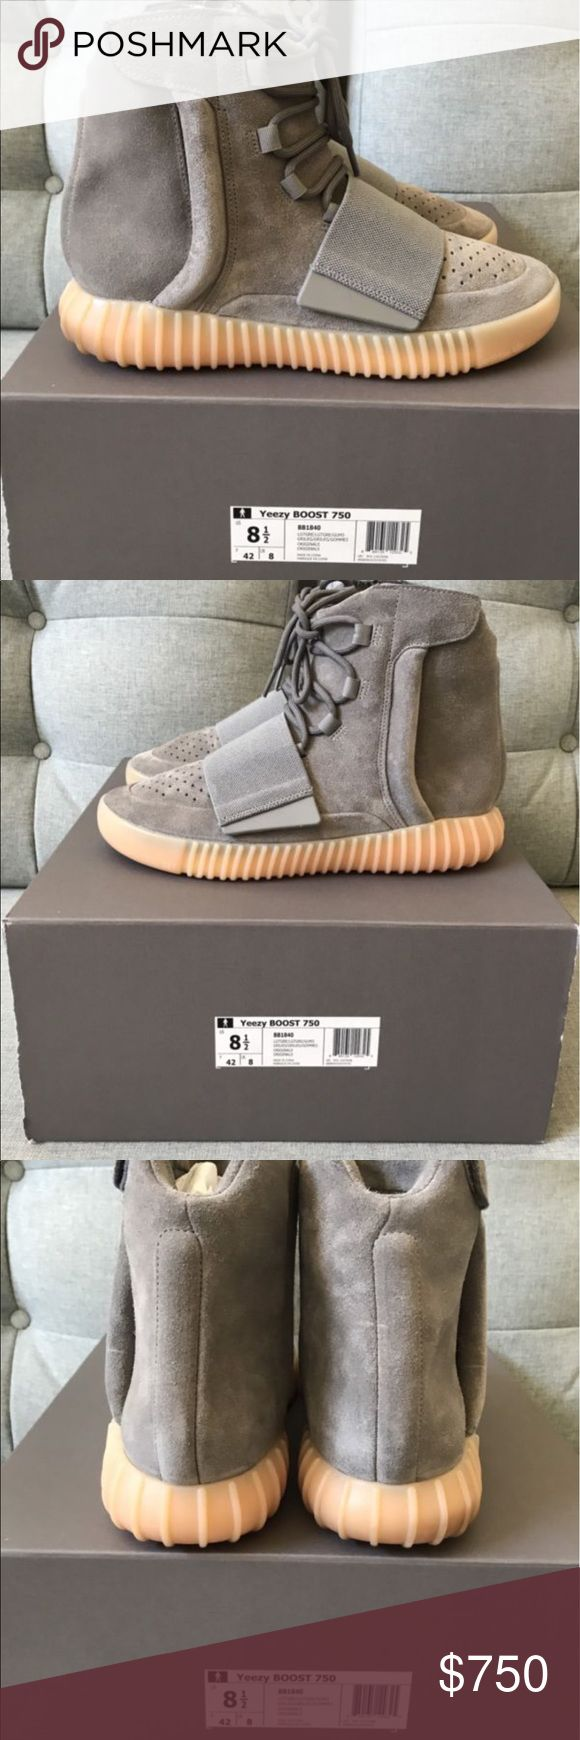 YEEZY BOOST 750 Grey Gum 100%Authentic, All Original Pictures, can contact me at (248) 694-7379 , TEXT OR CALL ME  REGARDING THE PRICE AND PAYMENT Follow me on instagram (@LakeSidekicksMI ) Yeezy Shoes Sneakers